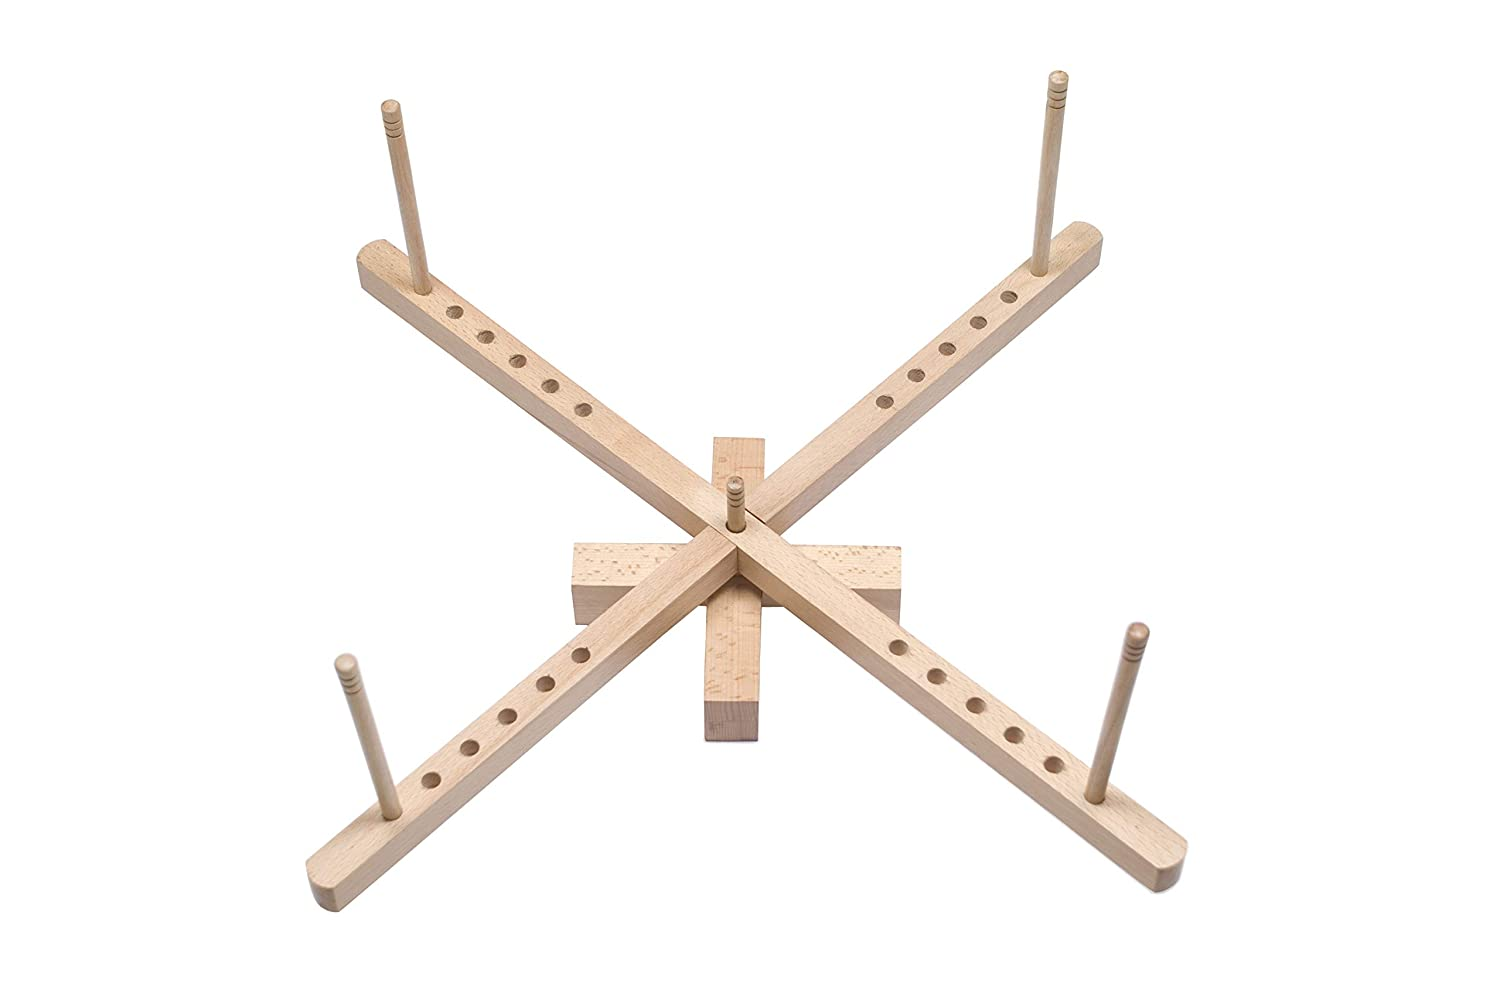 Handmade Tabletop Amish Style Wooden Yarn Swift – Made from Solid Beech Wood–Easy to Assemble. Perfect Gift for Any Memorable Occasions - Handcrafted by Indians Artisans! HandzCraft